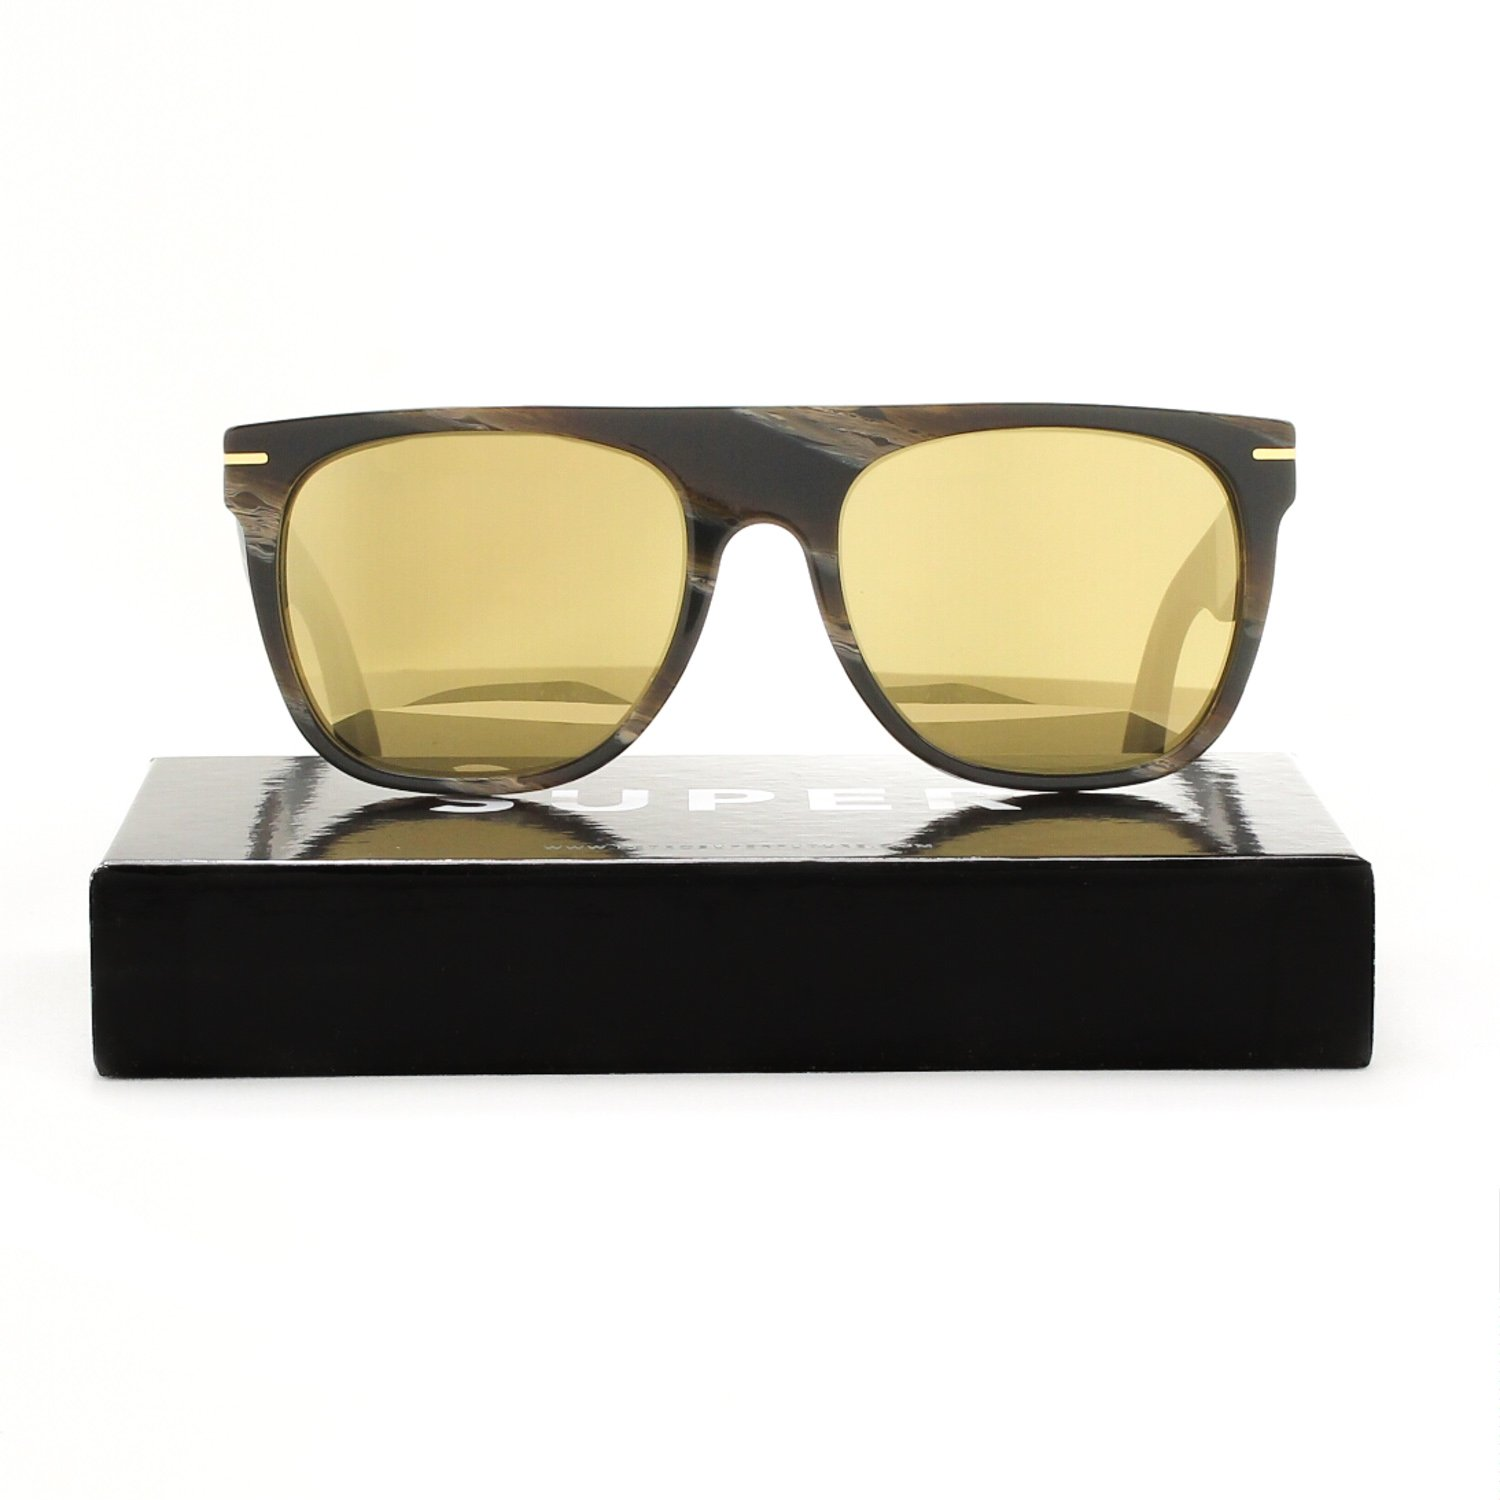 RetroSuperFuture Flat Top Sunglasses | Motorpsycho by RETROSUPERFUTURE (Image #3)